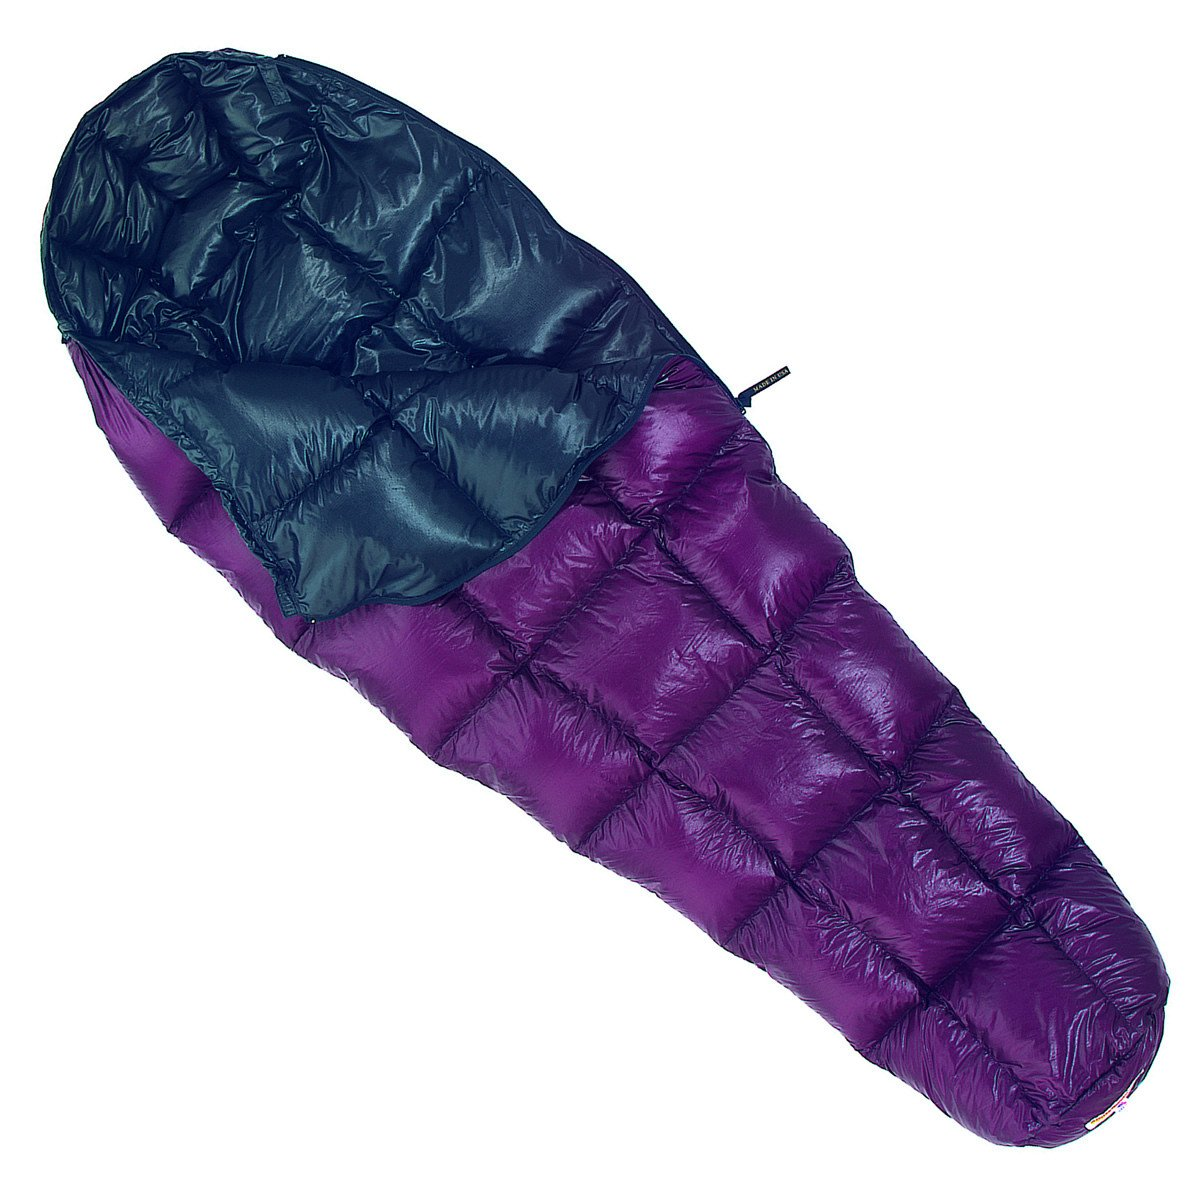 Western Mountaineering Highlite down sleeping bag partially open, in purple with black lining